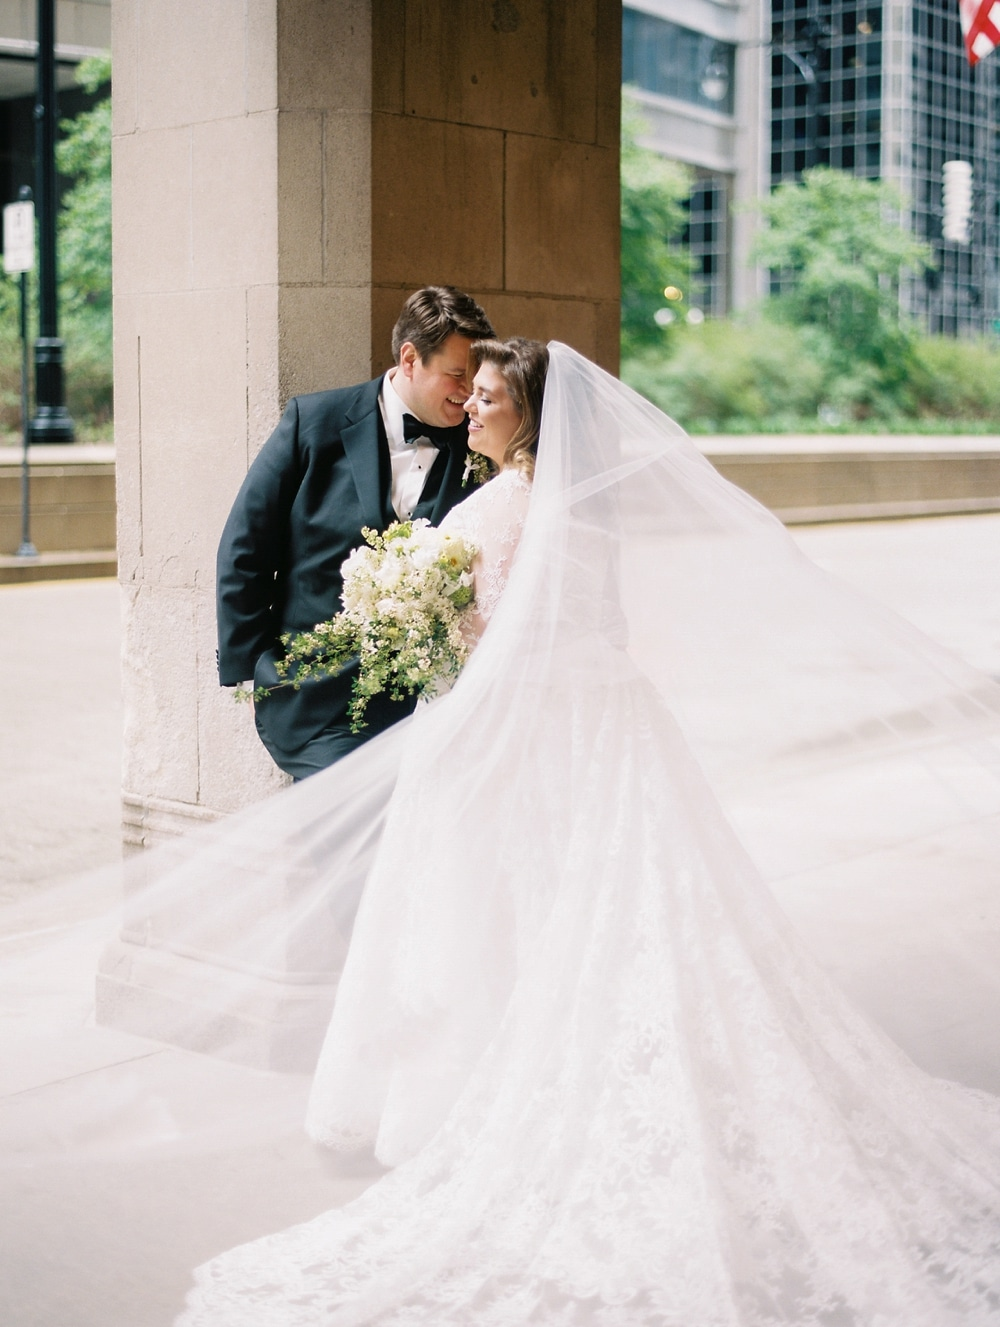 kristin-la-voie-photography-drake-hotel-chicago-wedding-photographer-5